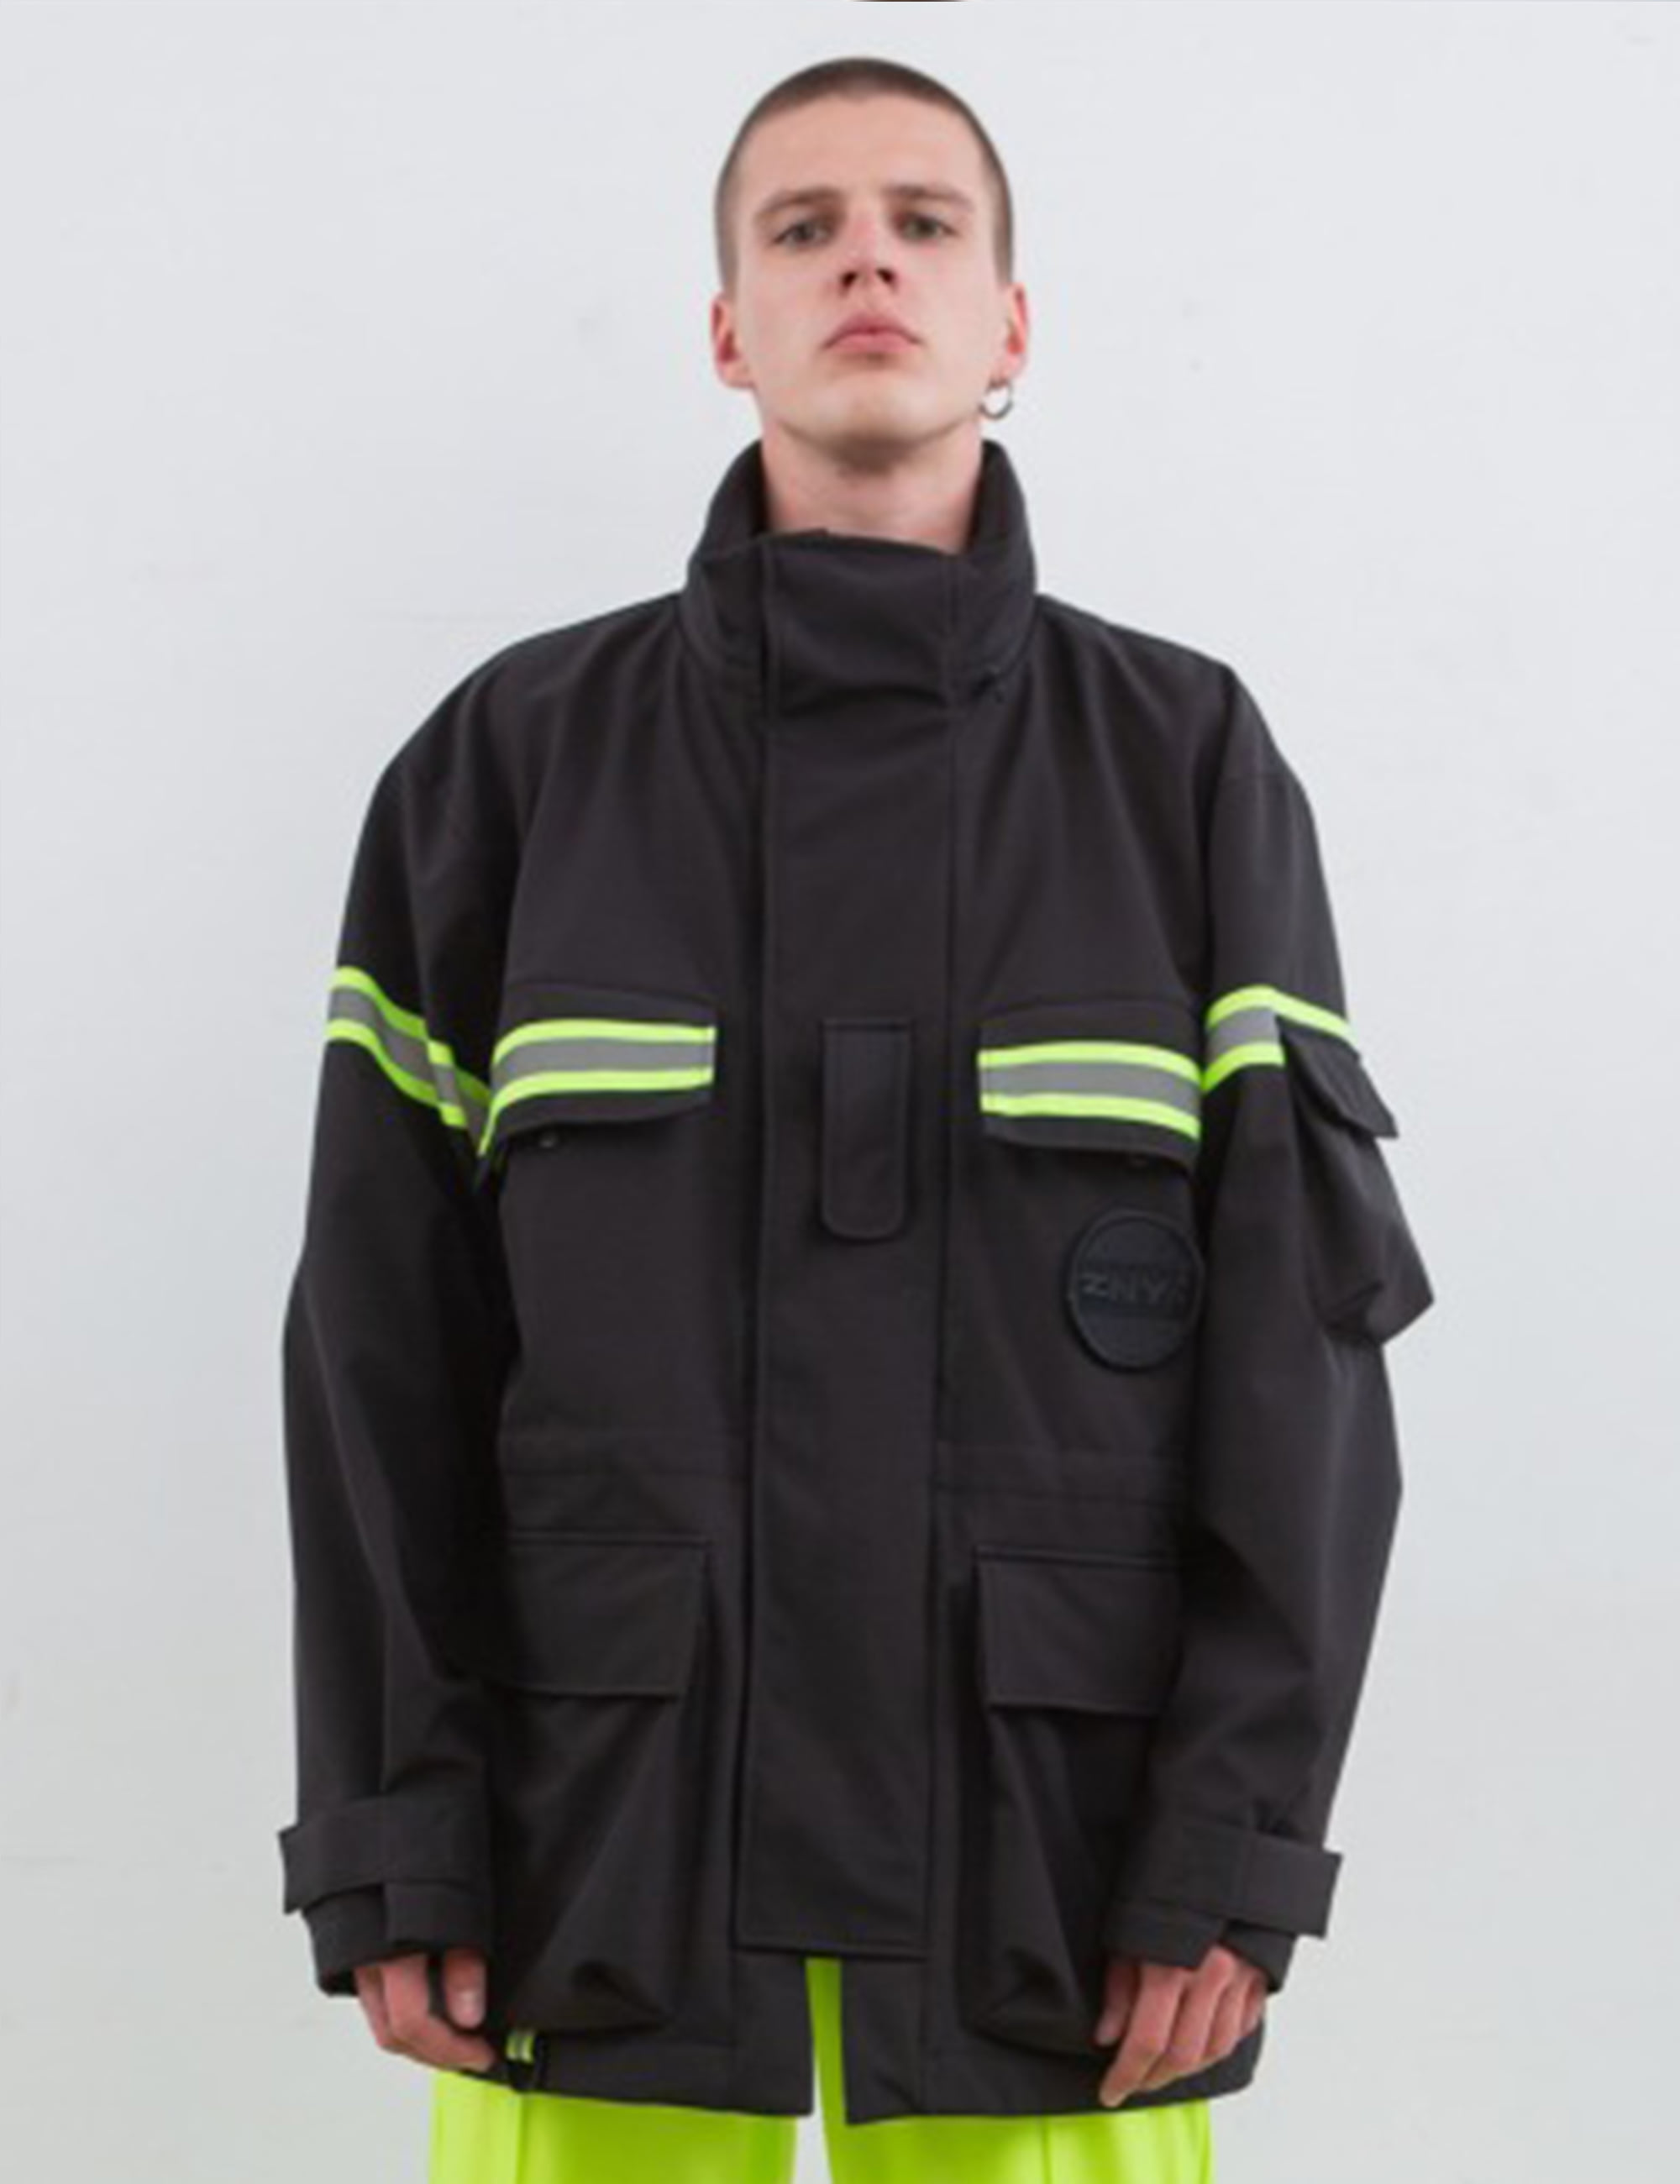 LIFESAVER'S JACKET_BLACK